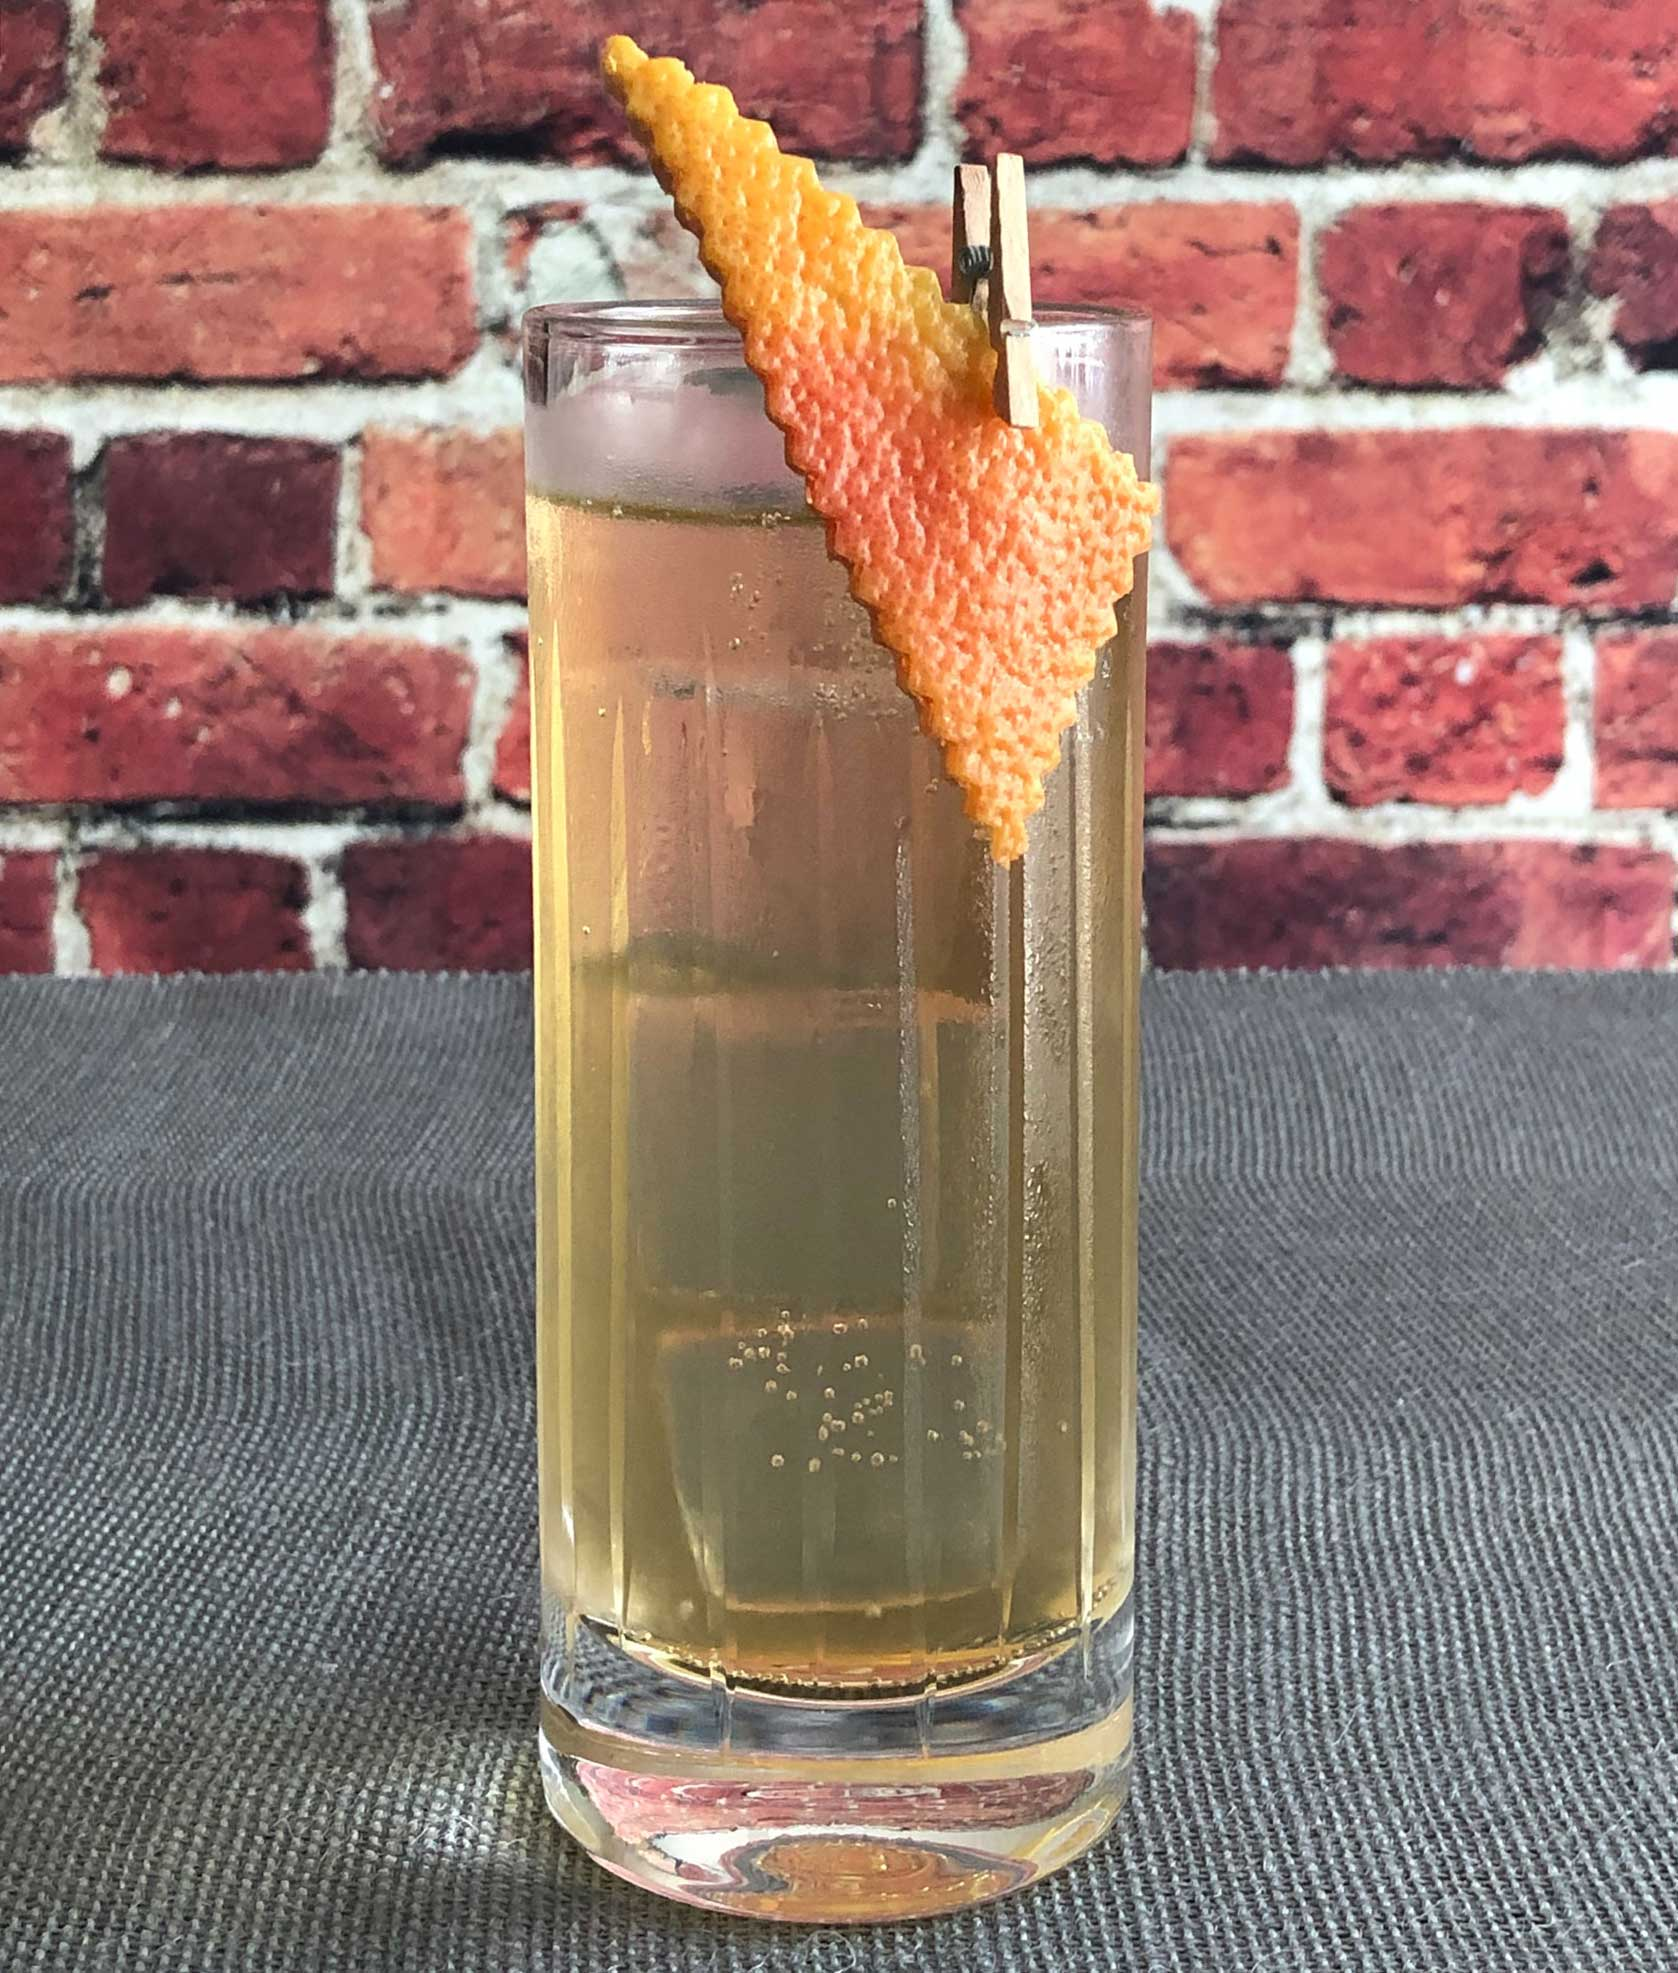 An example of the Kina Préparé, the mixed drink (cocktail) featuring Mattei Cap Corse Blanc Quinquina, Amaro Alta Verde, and soda water; photo by Lee Edwards